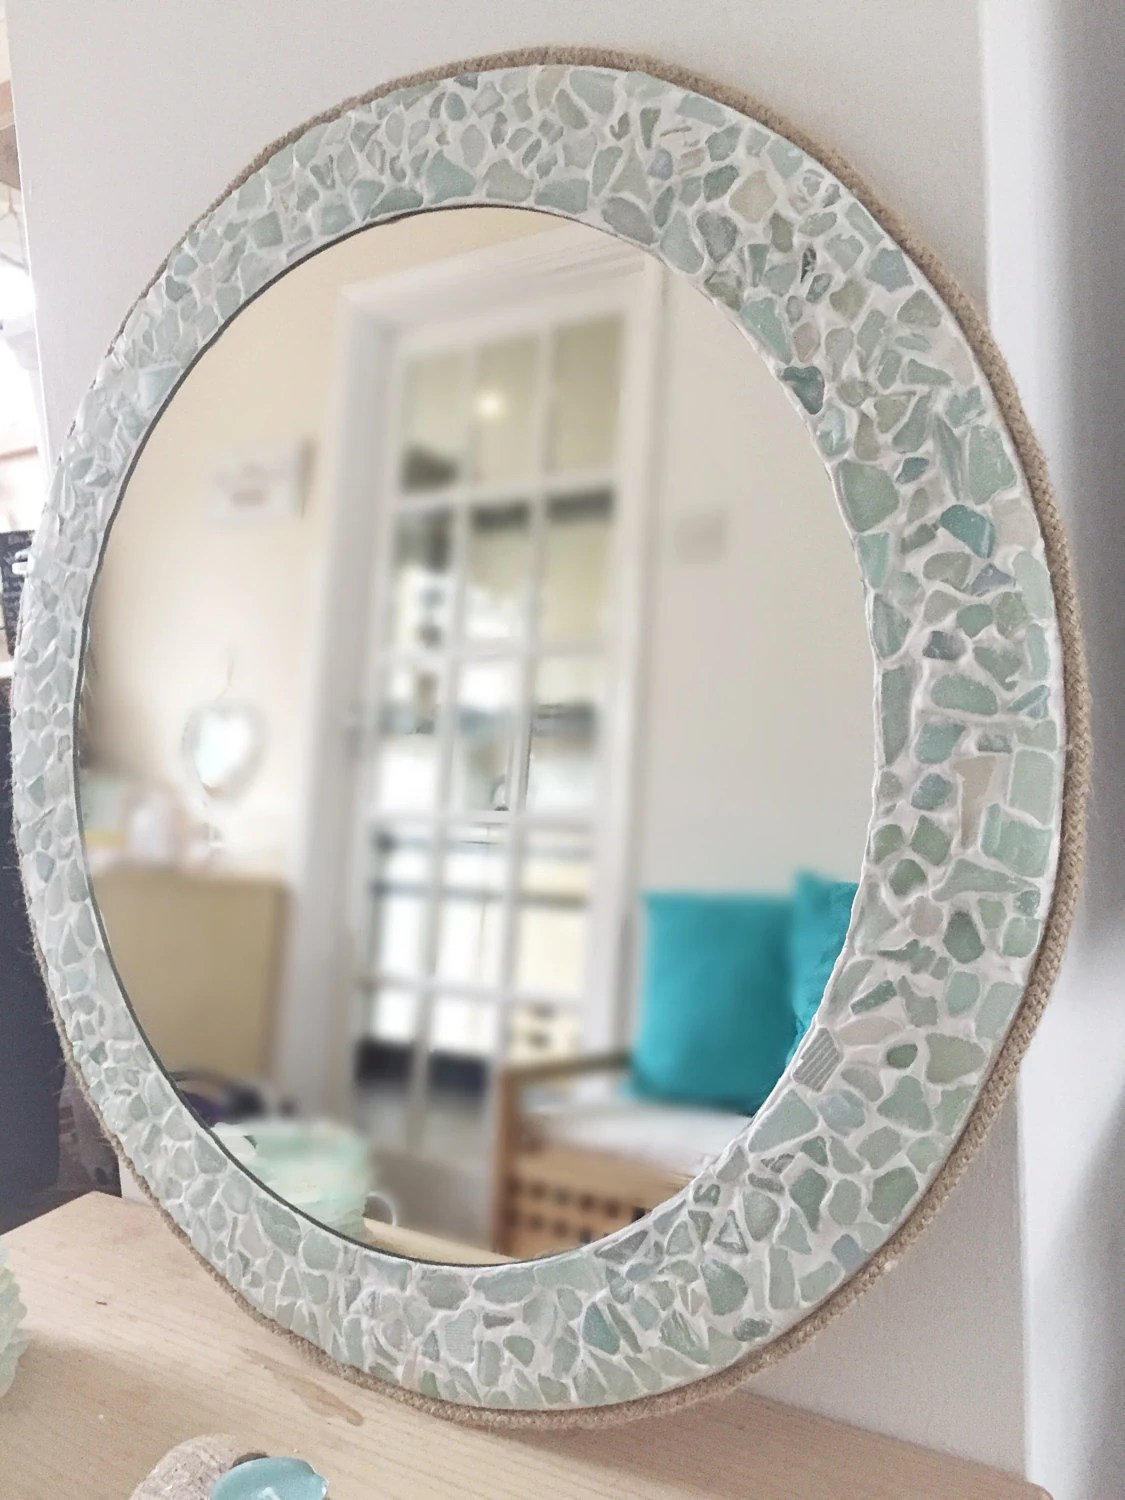 Large Bathroom Mirror Frame Large Round Sea Glass Mirror Isle Of Wight Beach Home Decor